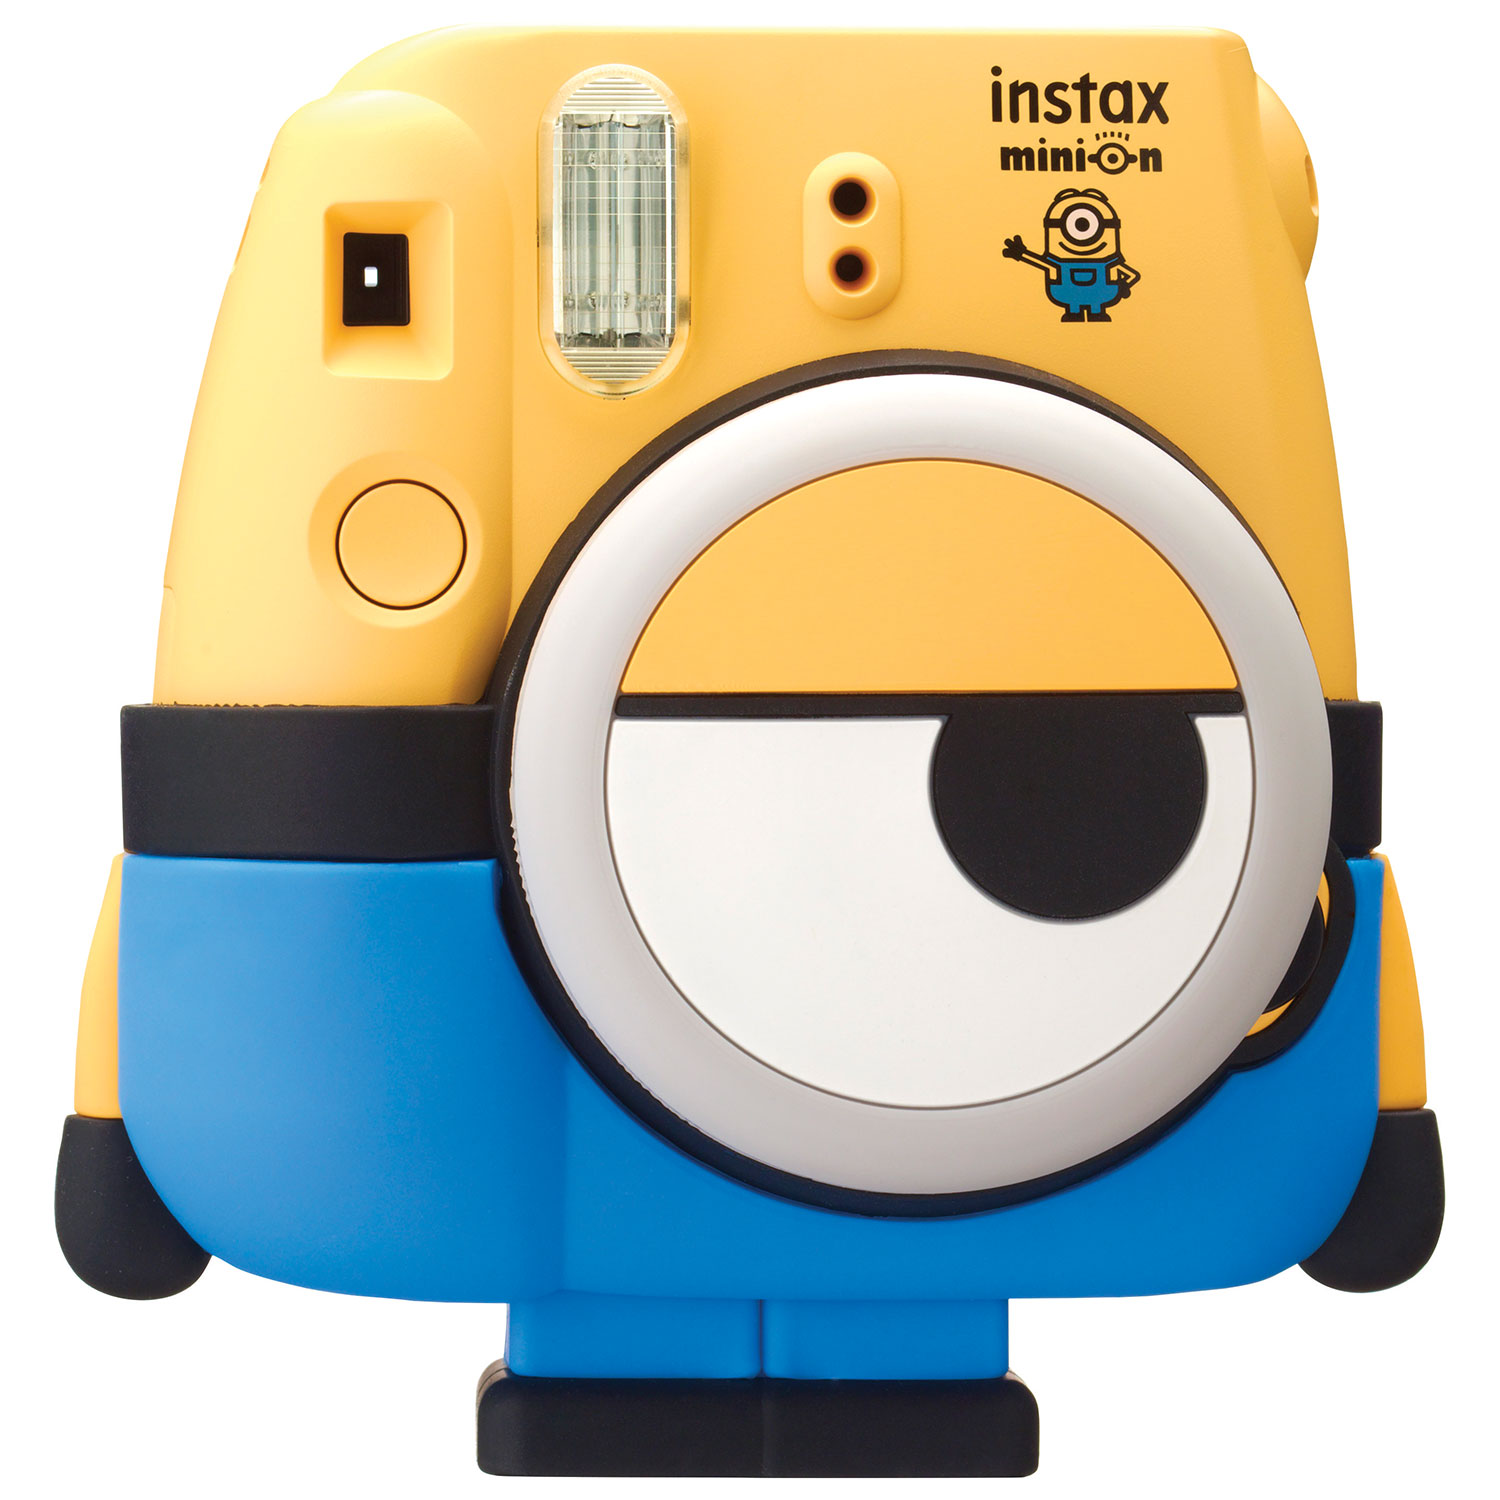 INSTAX MINI MINION INSTANT CAMERA